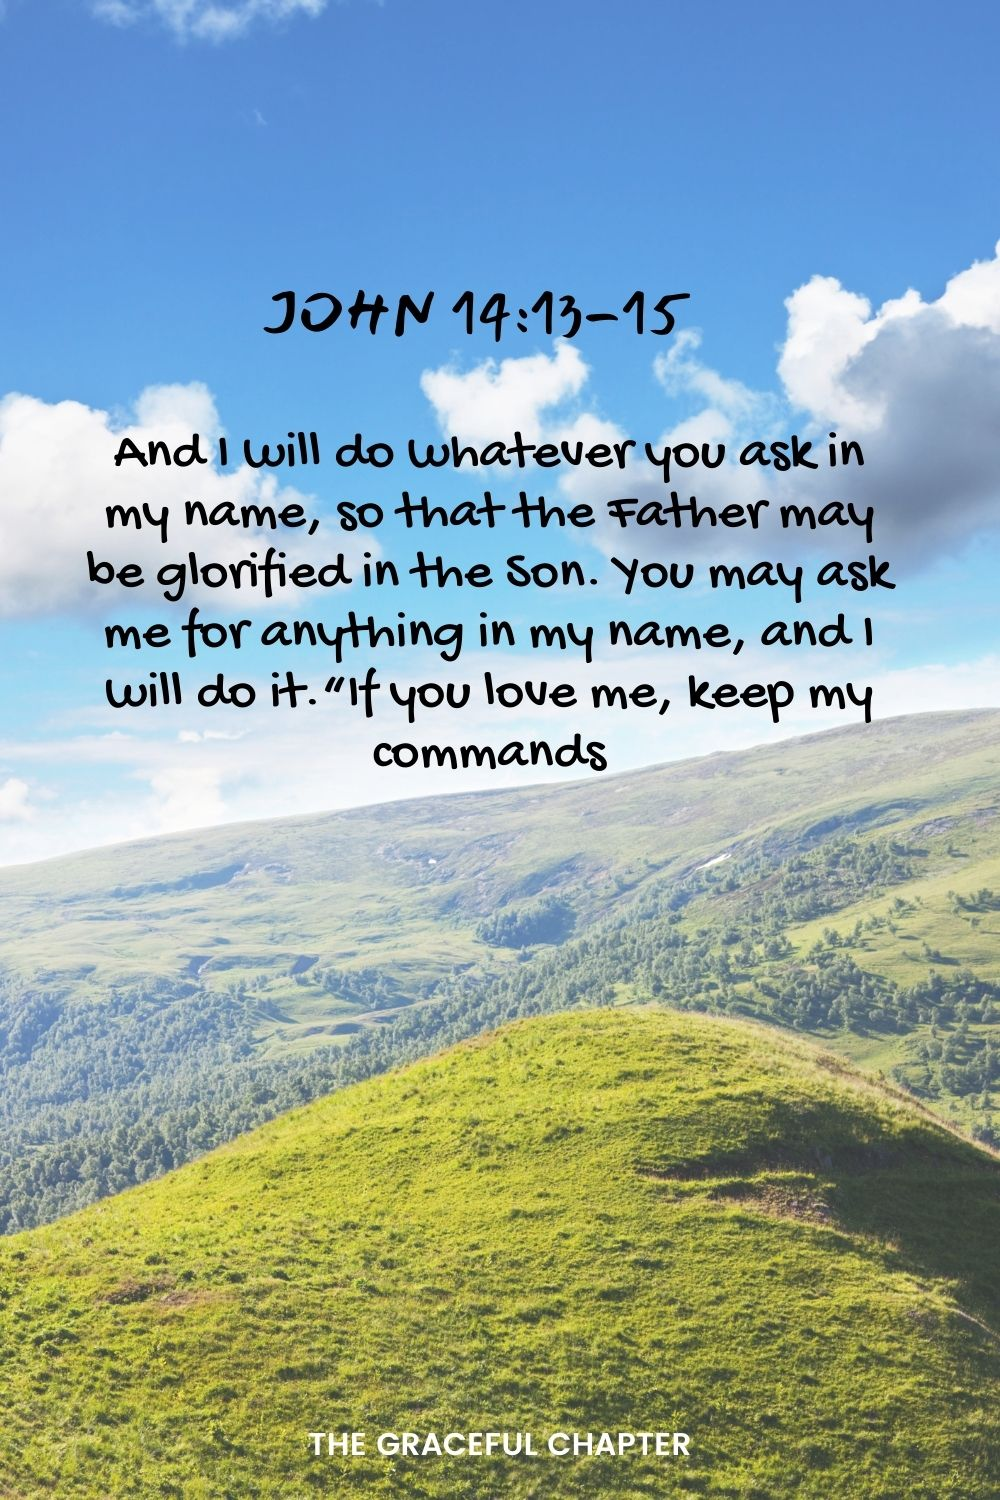 """And I will do whatever you ask in my name, so that the Father may be glorified in the Son. You may ask me for anything in my name, and I will do it.""""If you love me, keep my commands. John 14:13-15"""